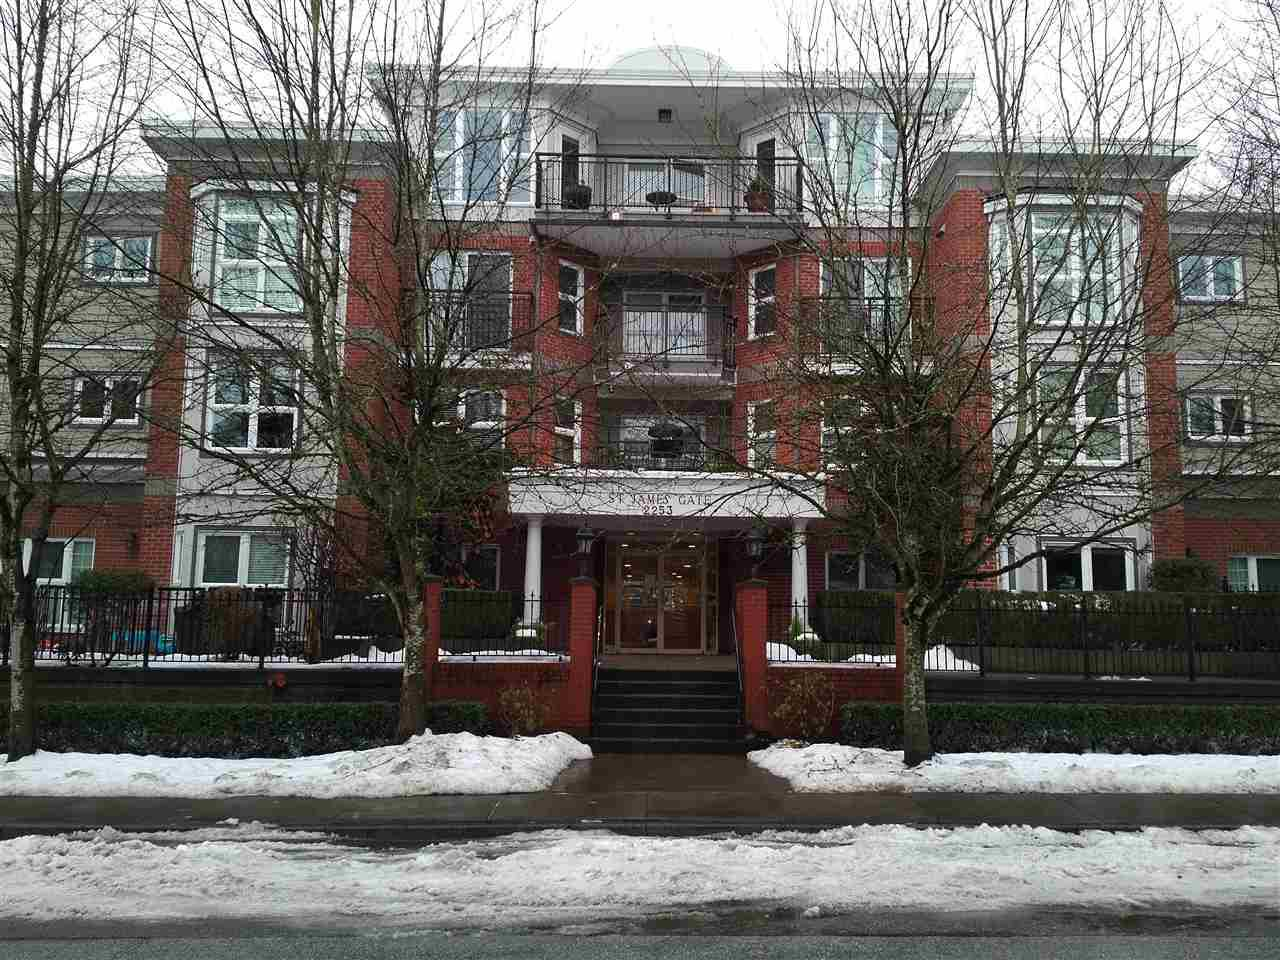 """Photo 2: Photos: 105 2253 WELCHER Avenue in Port Coquitlam: Central Pt Coquitlam Condo for sale in """"St James Gate"""" : MLS®# R2127970"""